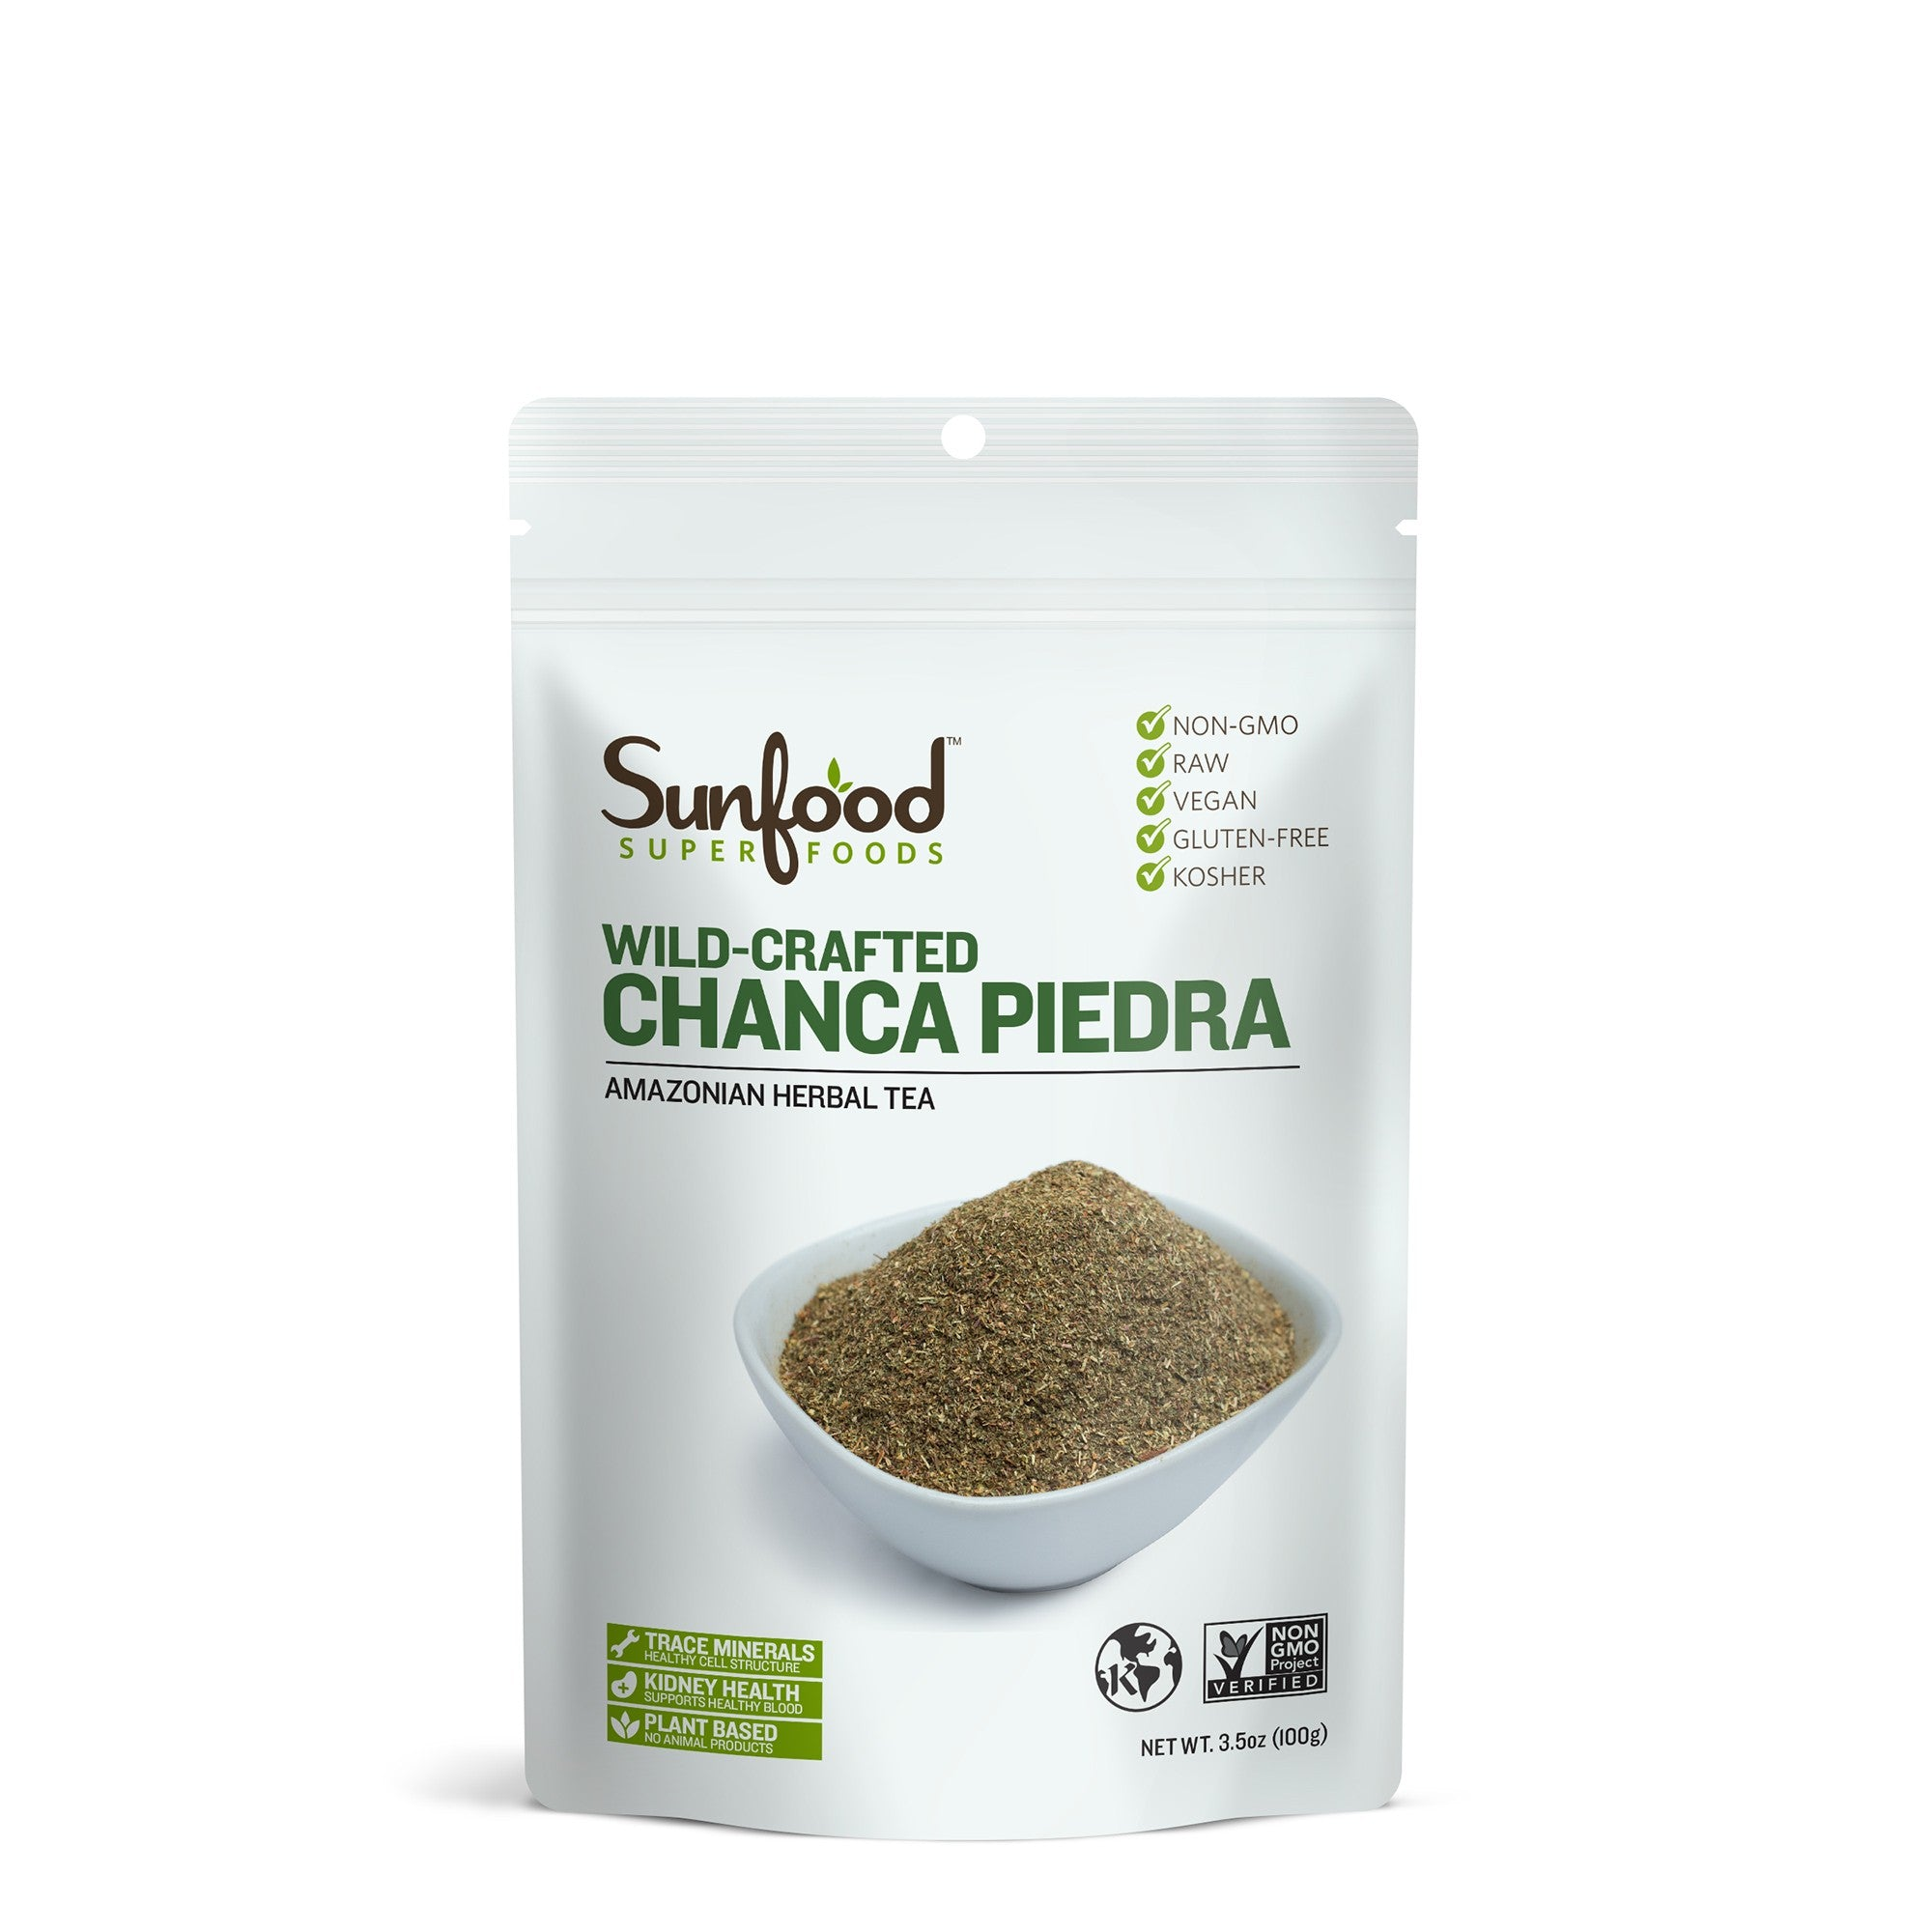 Wild-Crafted Chanca Piedra